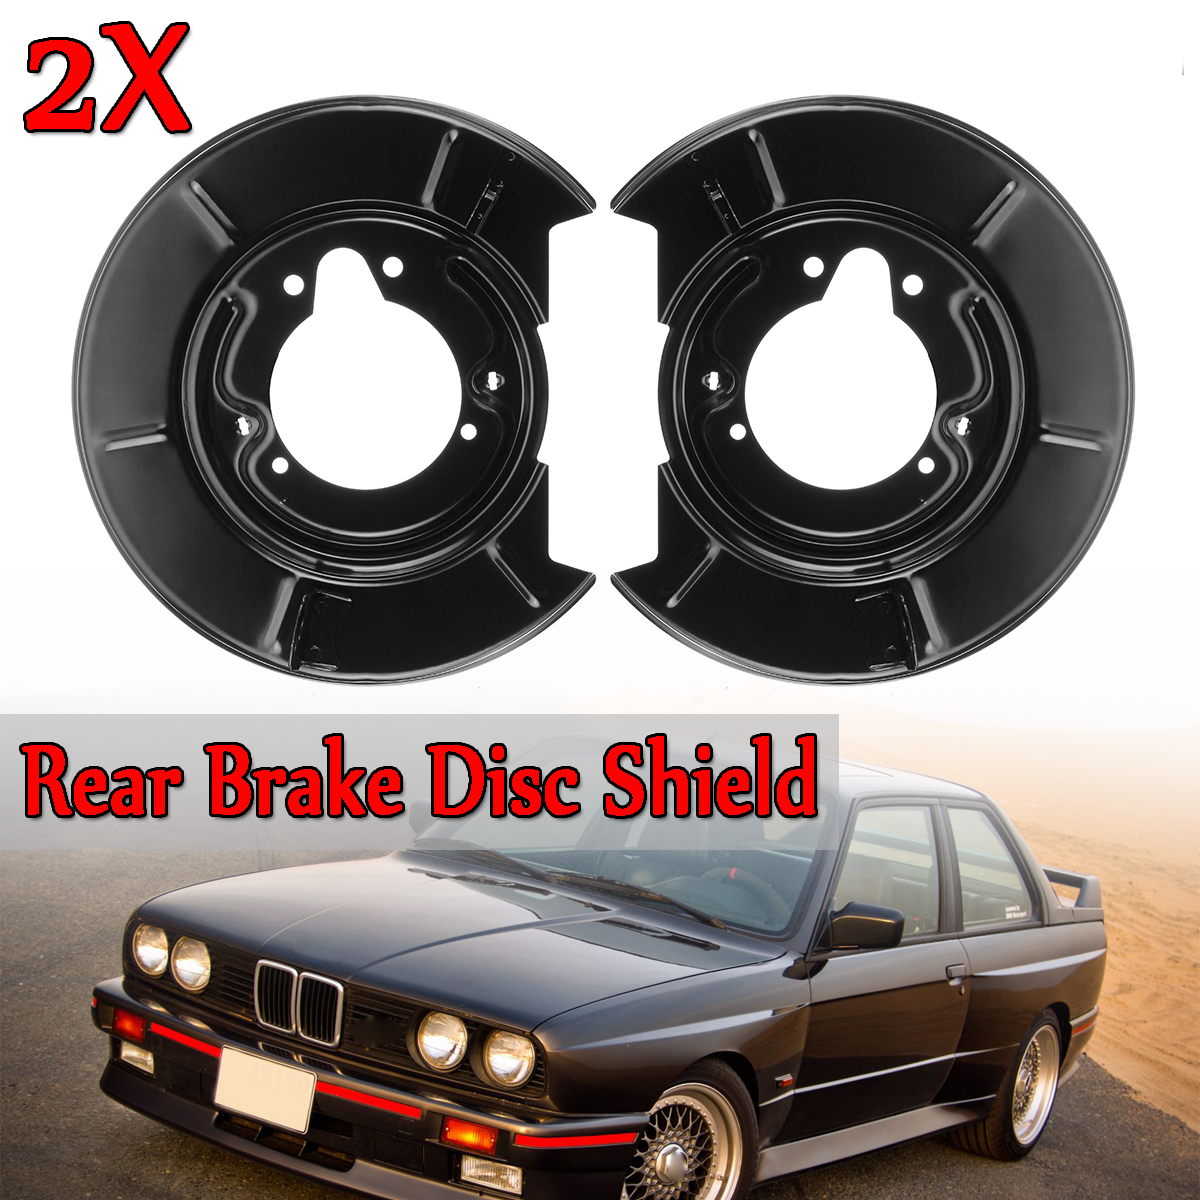 KM091443 Fits: 1999 99 BMW 323i Sedan Models with E46 Body or Convertible Models with E36 Body Max Brakes Front /& Rear Supreme Brake Kit OE Series Rotors + Ceramic Pads